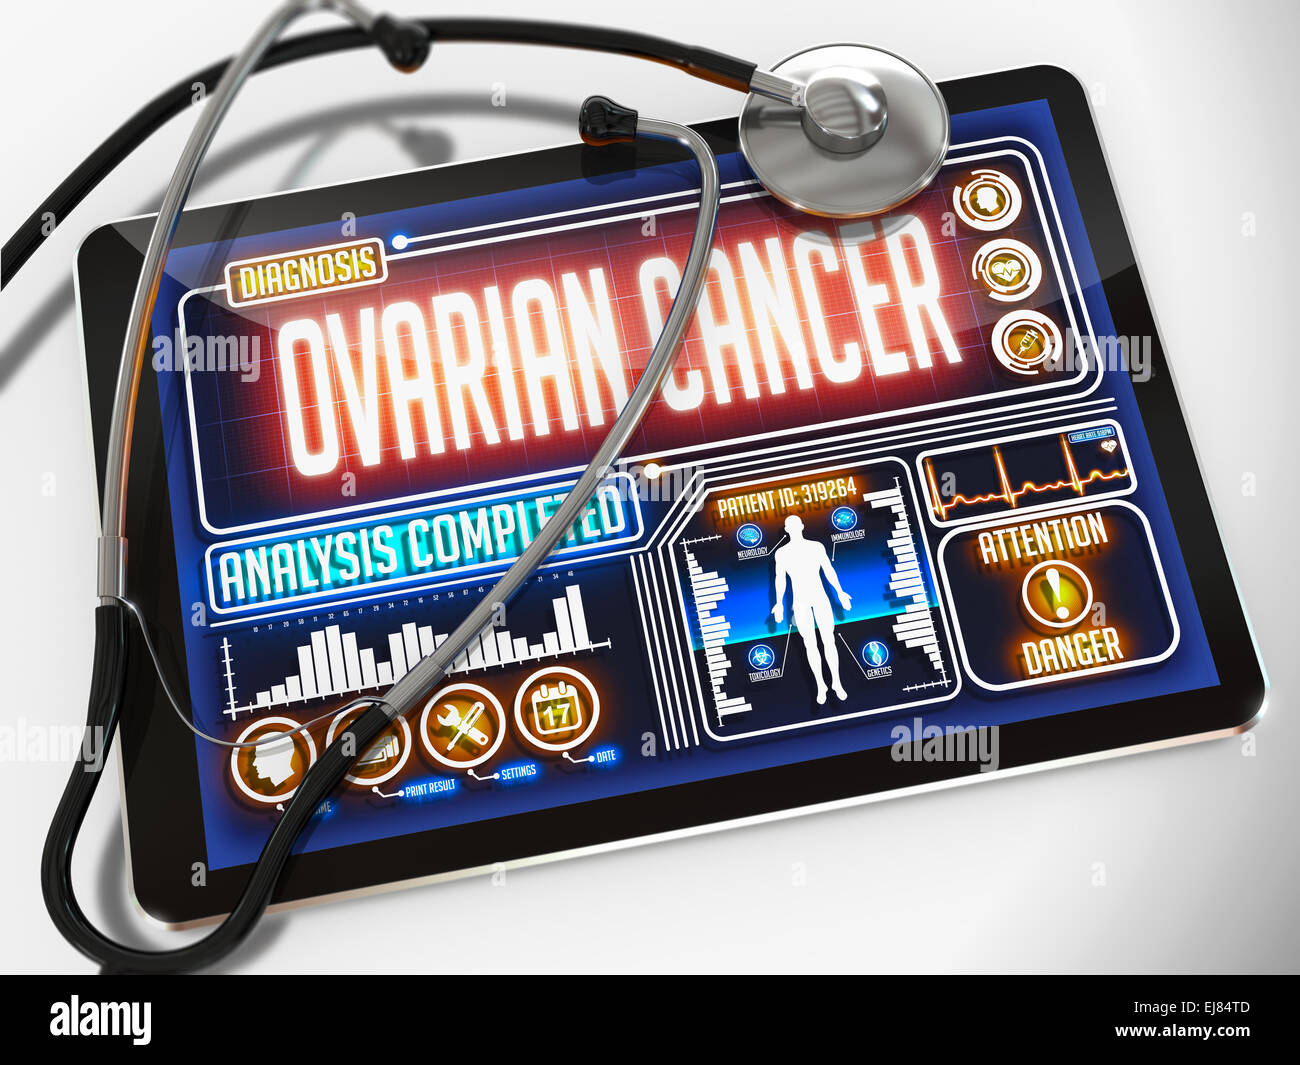 Ovarian Cancer on the Display of Medical Tablet. - Stock Image